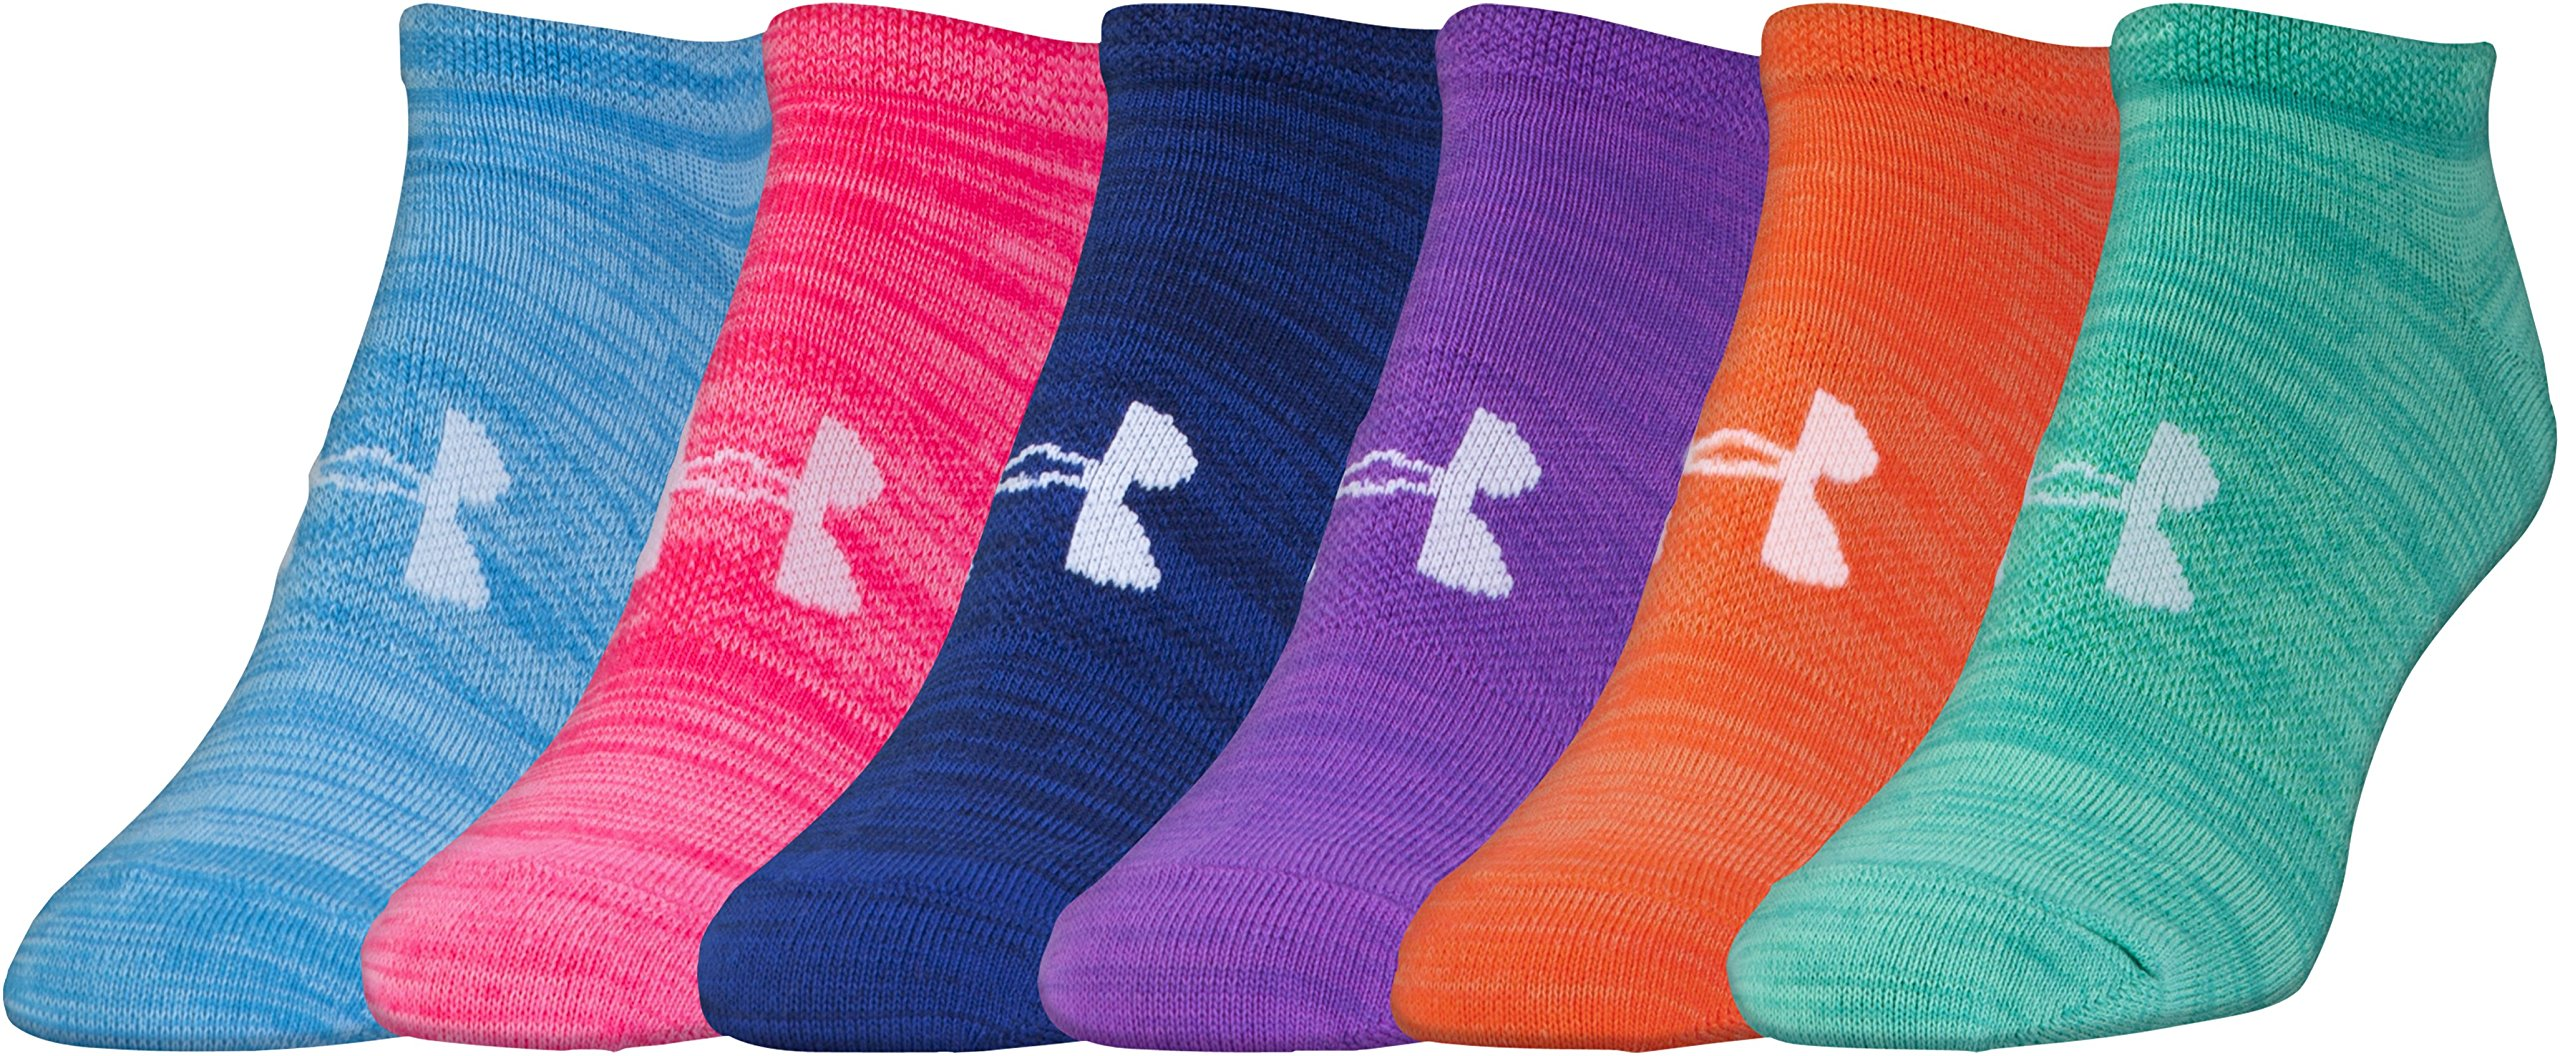 10a7150f3d5 Under Armour Women s Essential Twist No Show Socks (6 Pack) product image